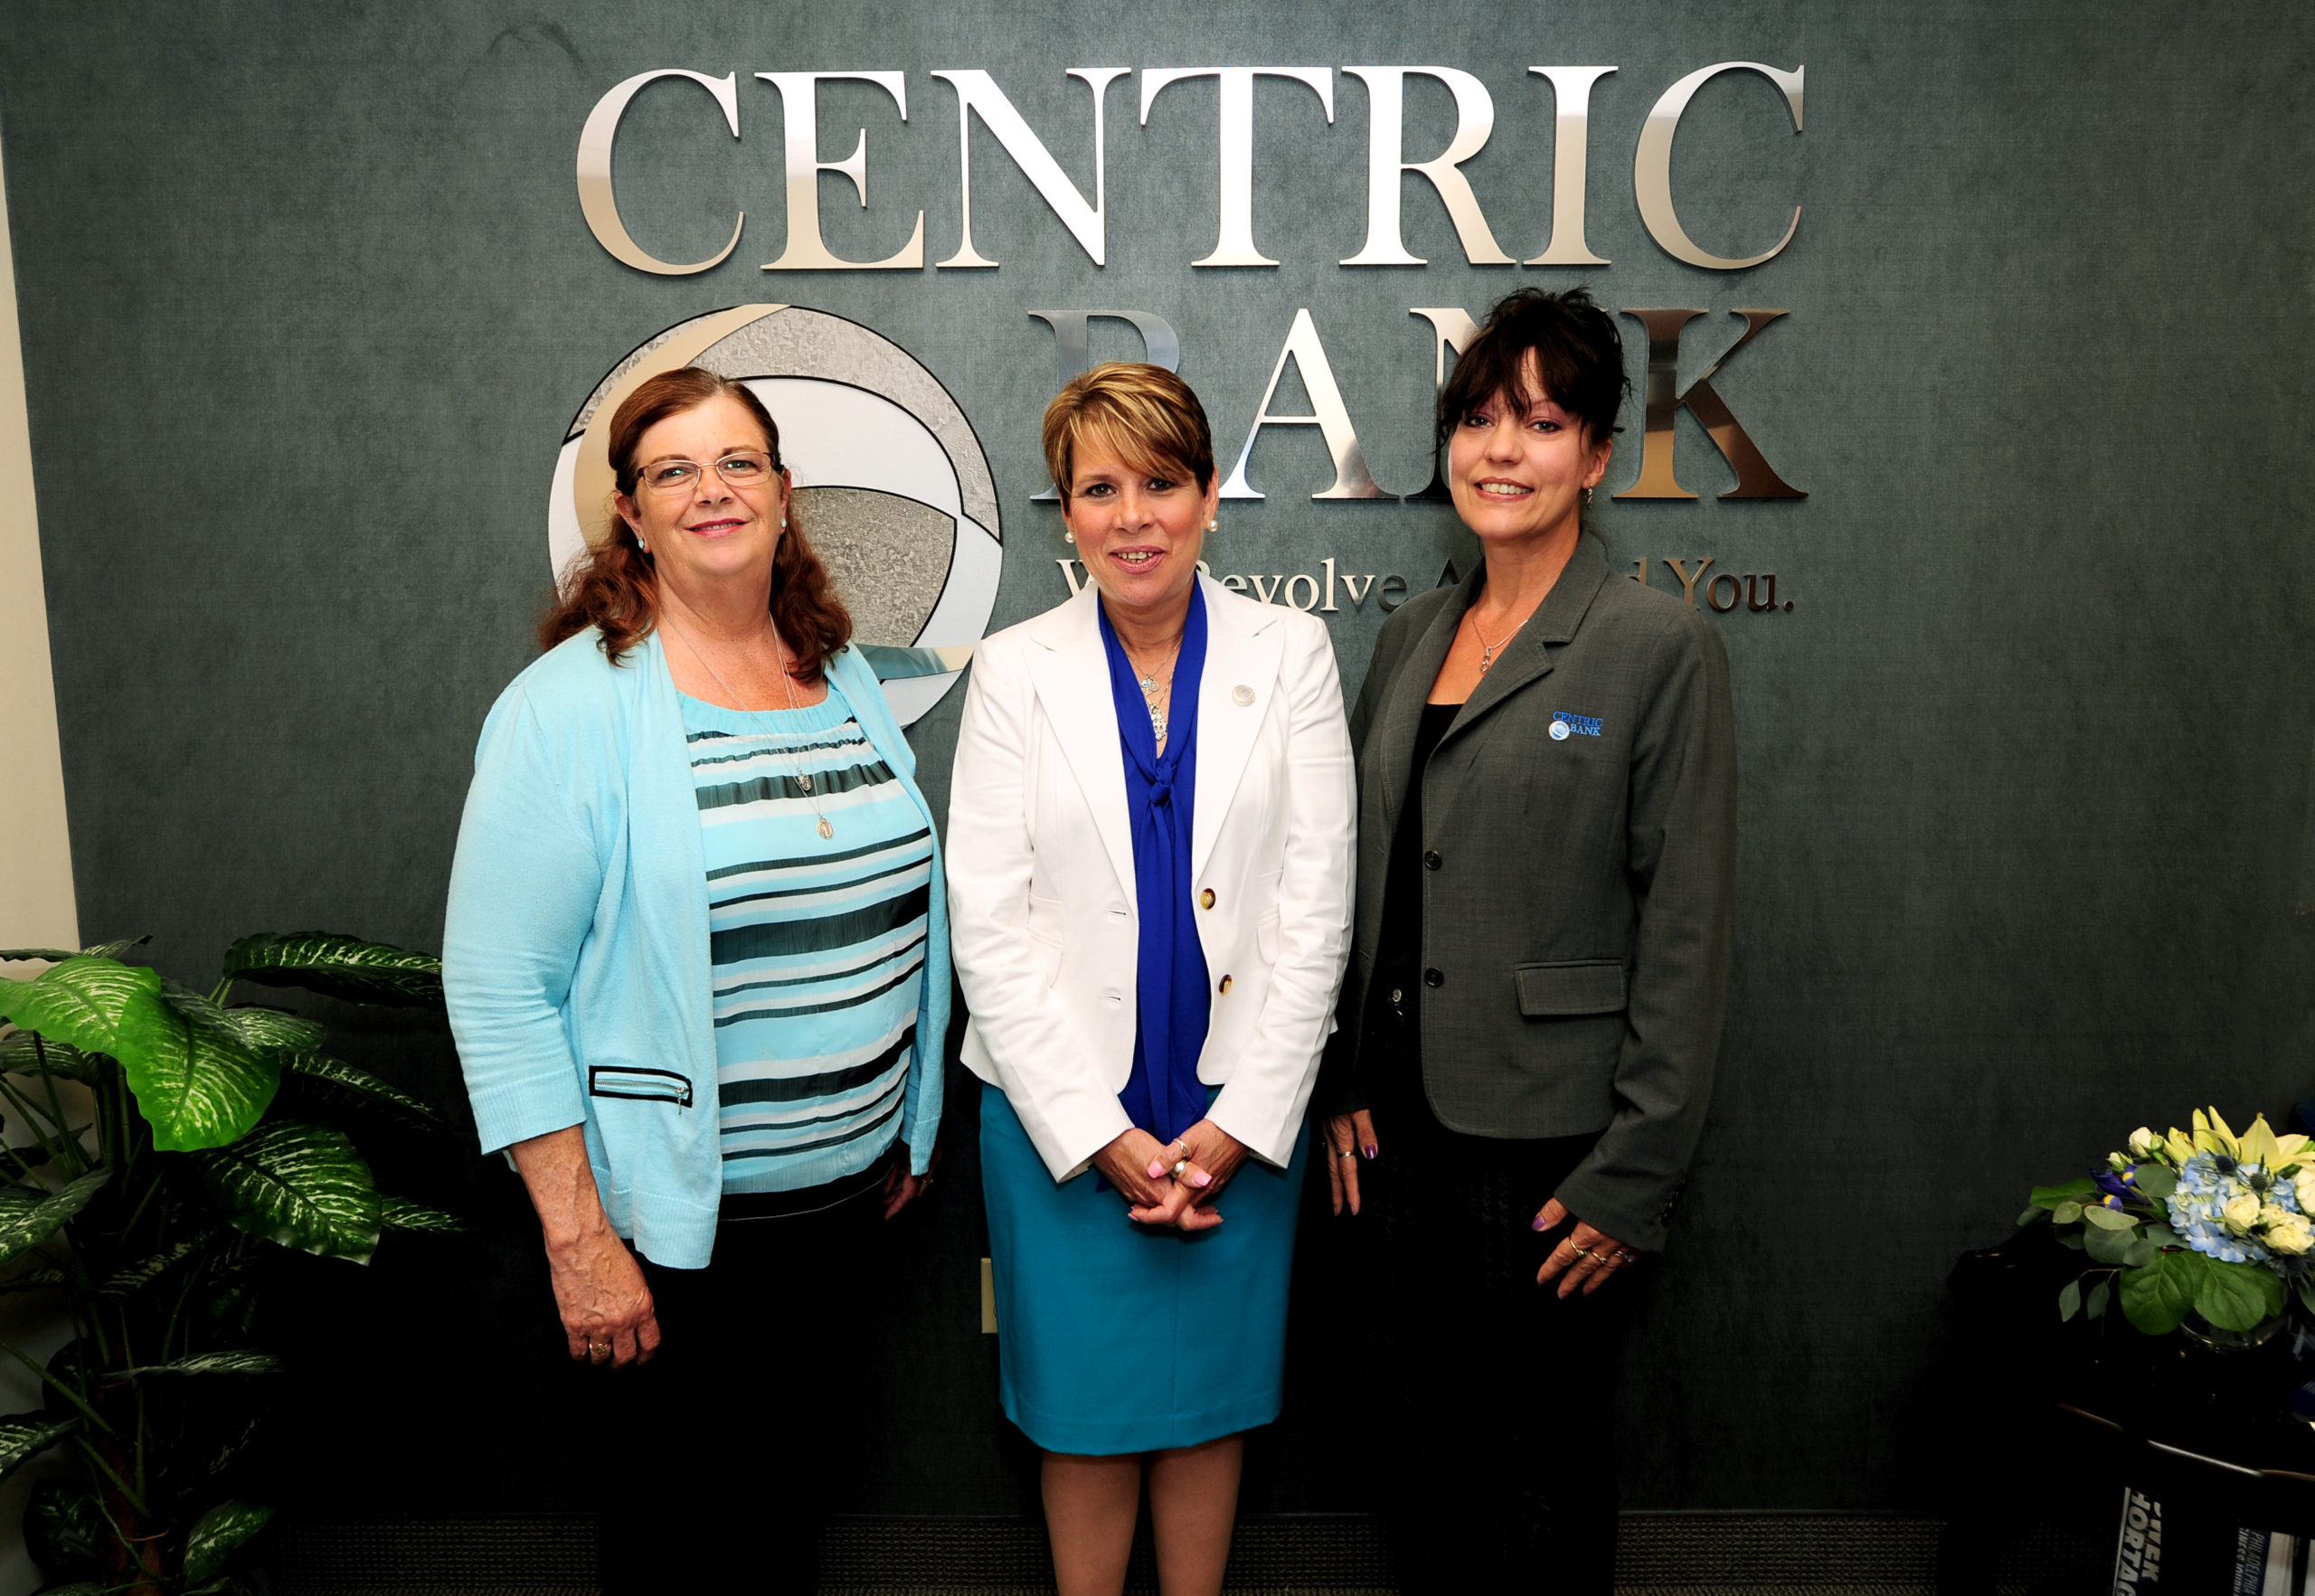 Centric Bank Introduces Concierge Banking at Redesigned Doylestown Financial Center